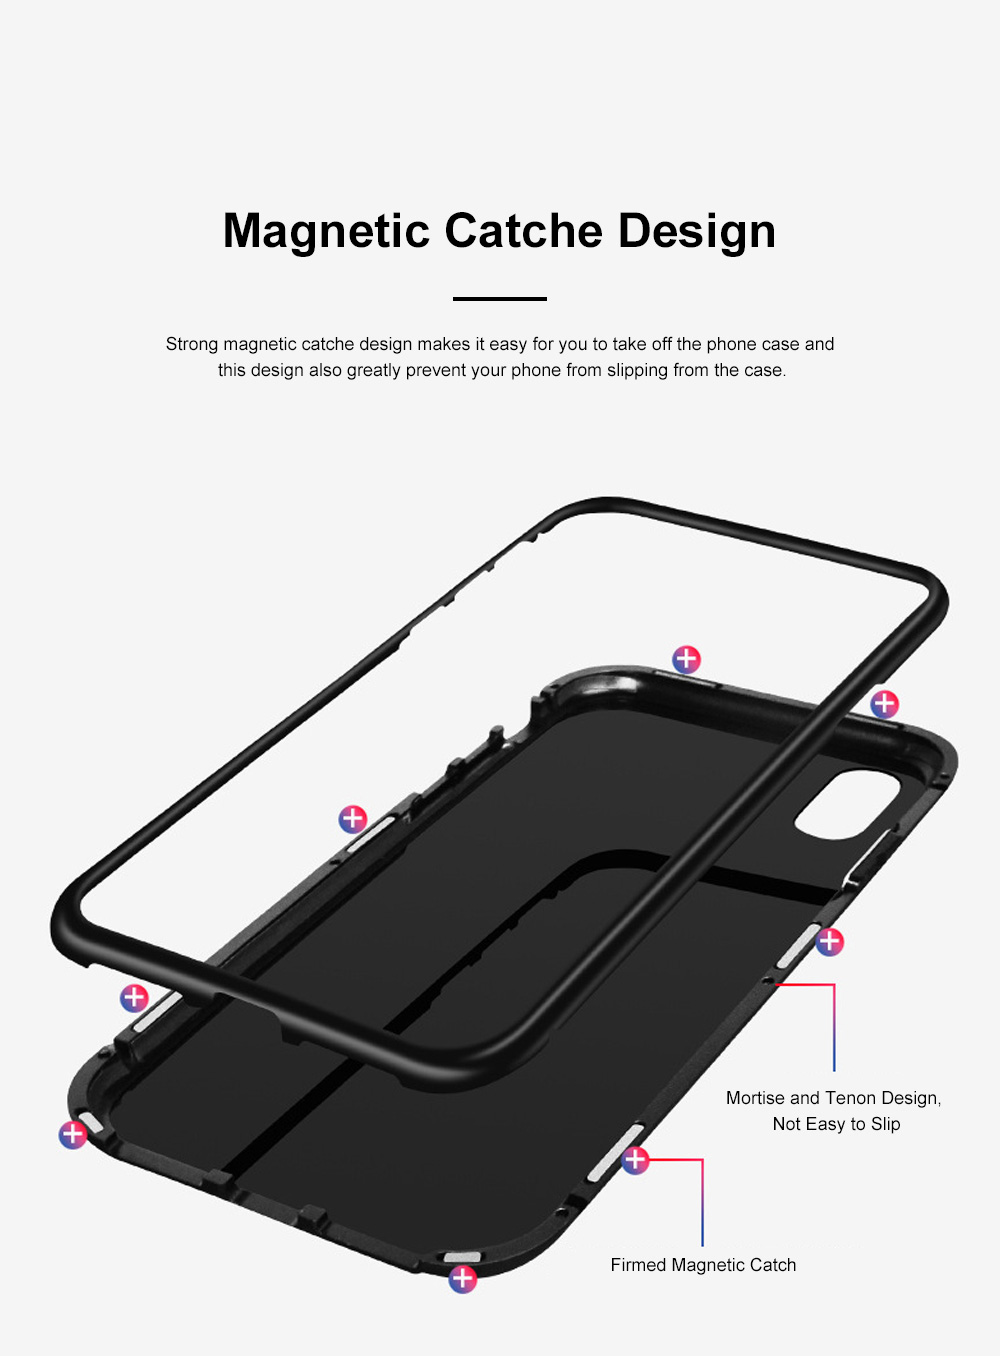 Minimalist Delicate Firmed Magnetic Catche Glass Samsung Phone Case Shock-proof Aluminum Alloy Phone Protective Cover For Samsung note 9, Samsung S9, Samsung s9 plus 4